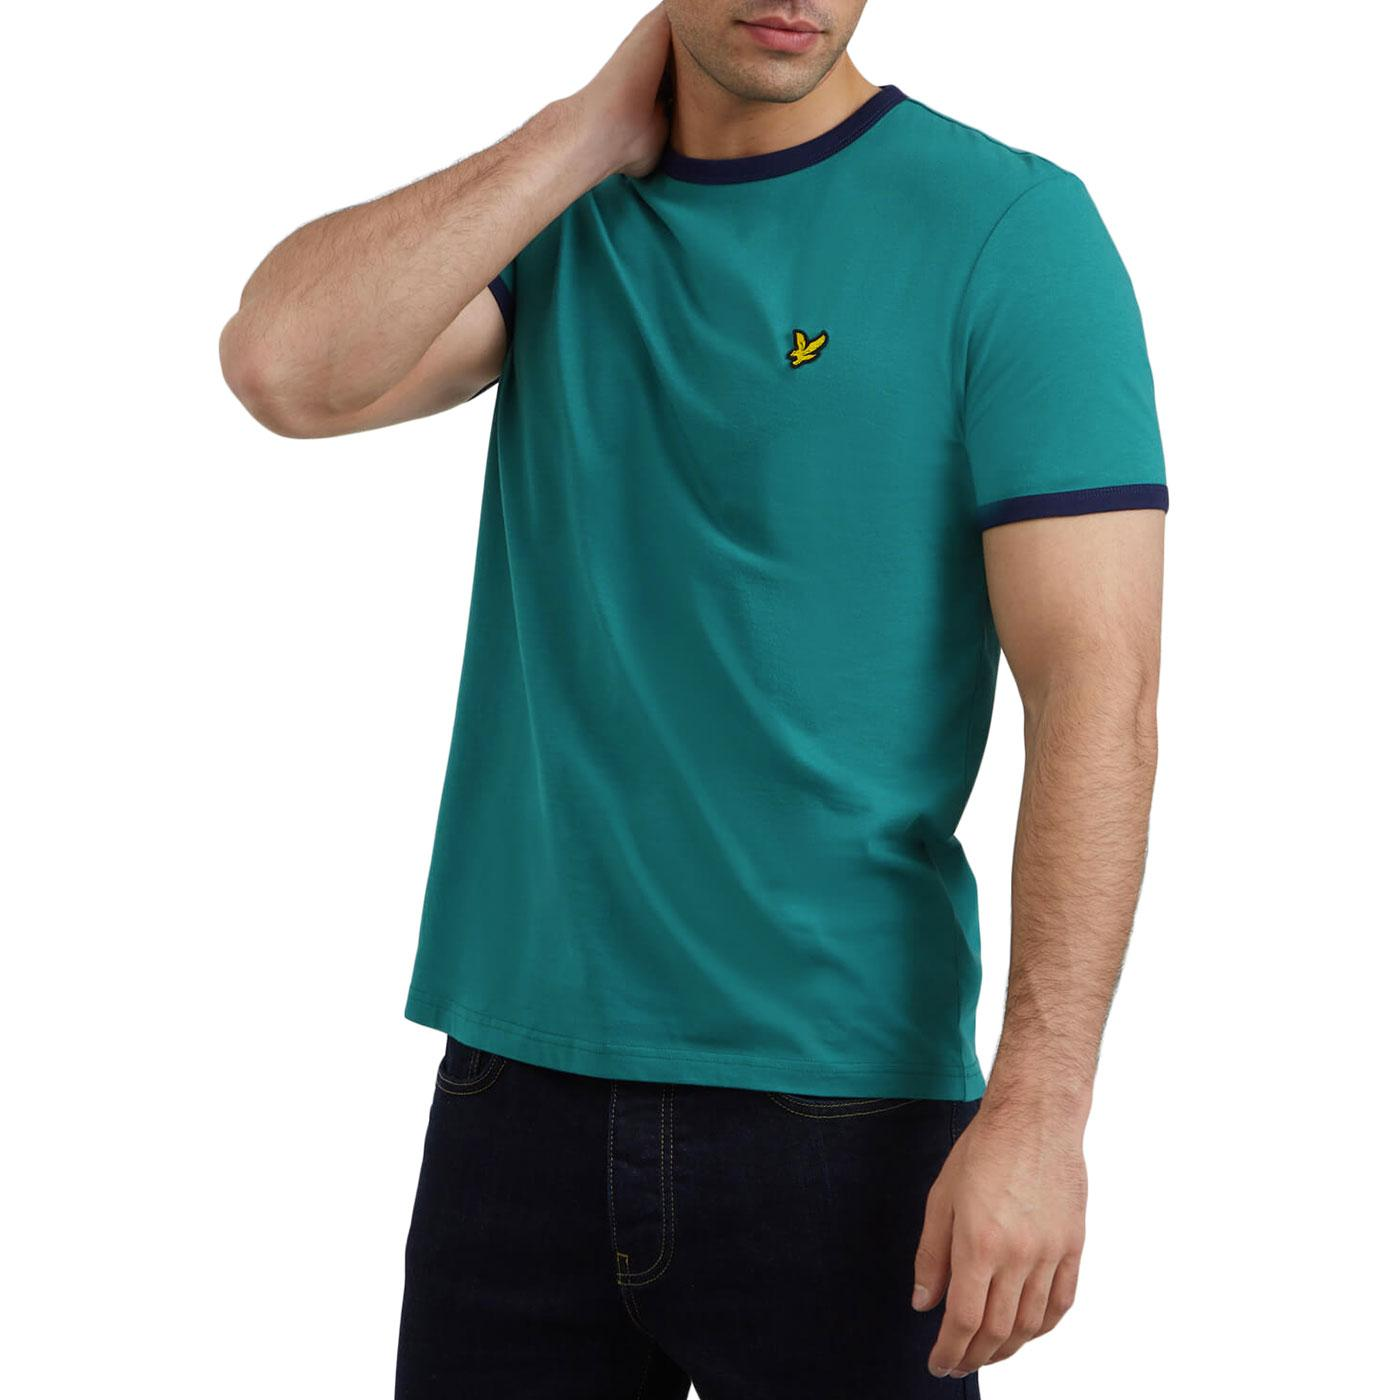 LYLE & SCOTT Retro Mod Ringer T-Shirt ALPINE GREEN